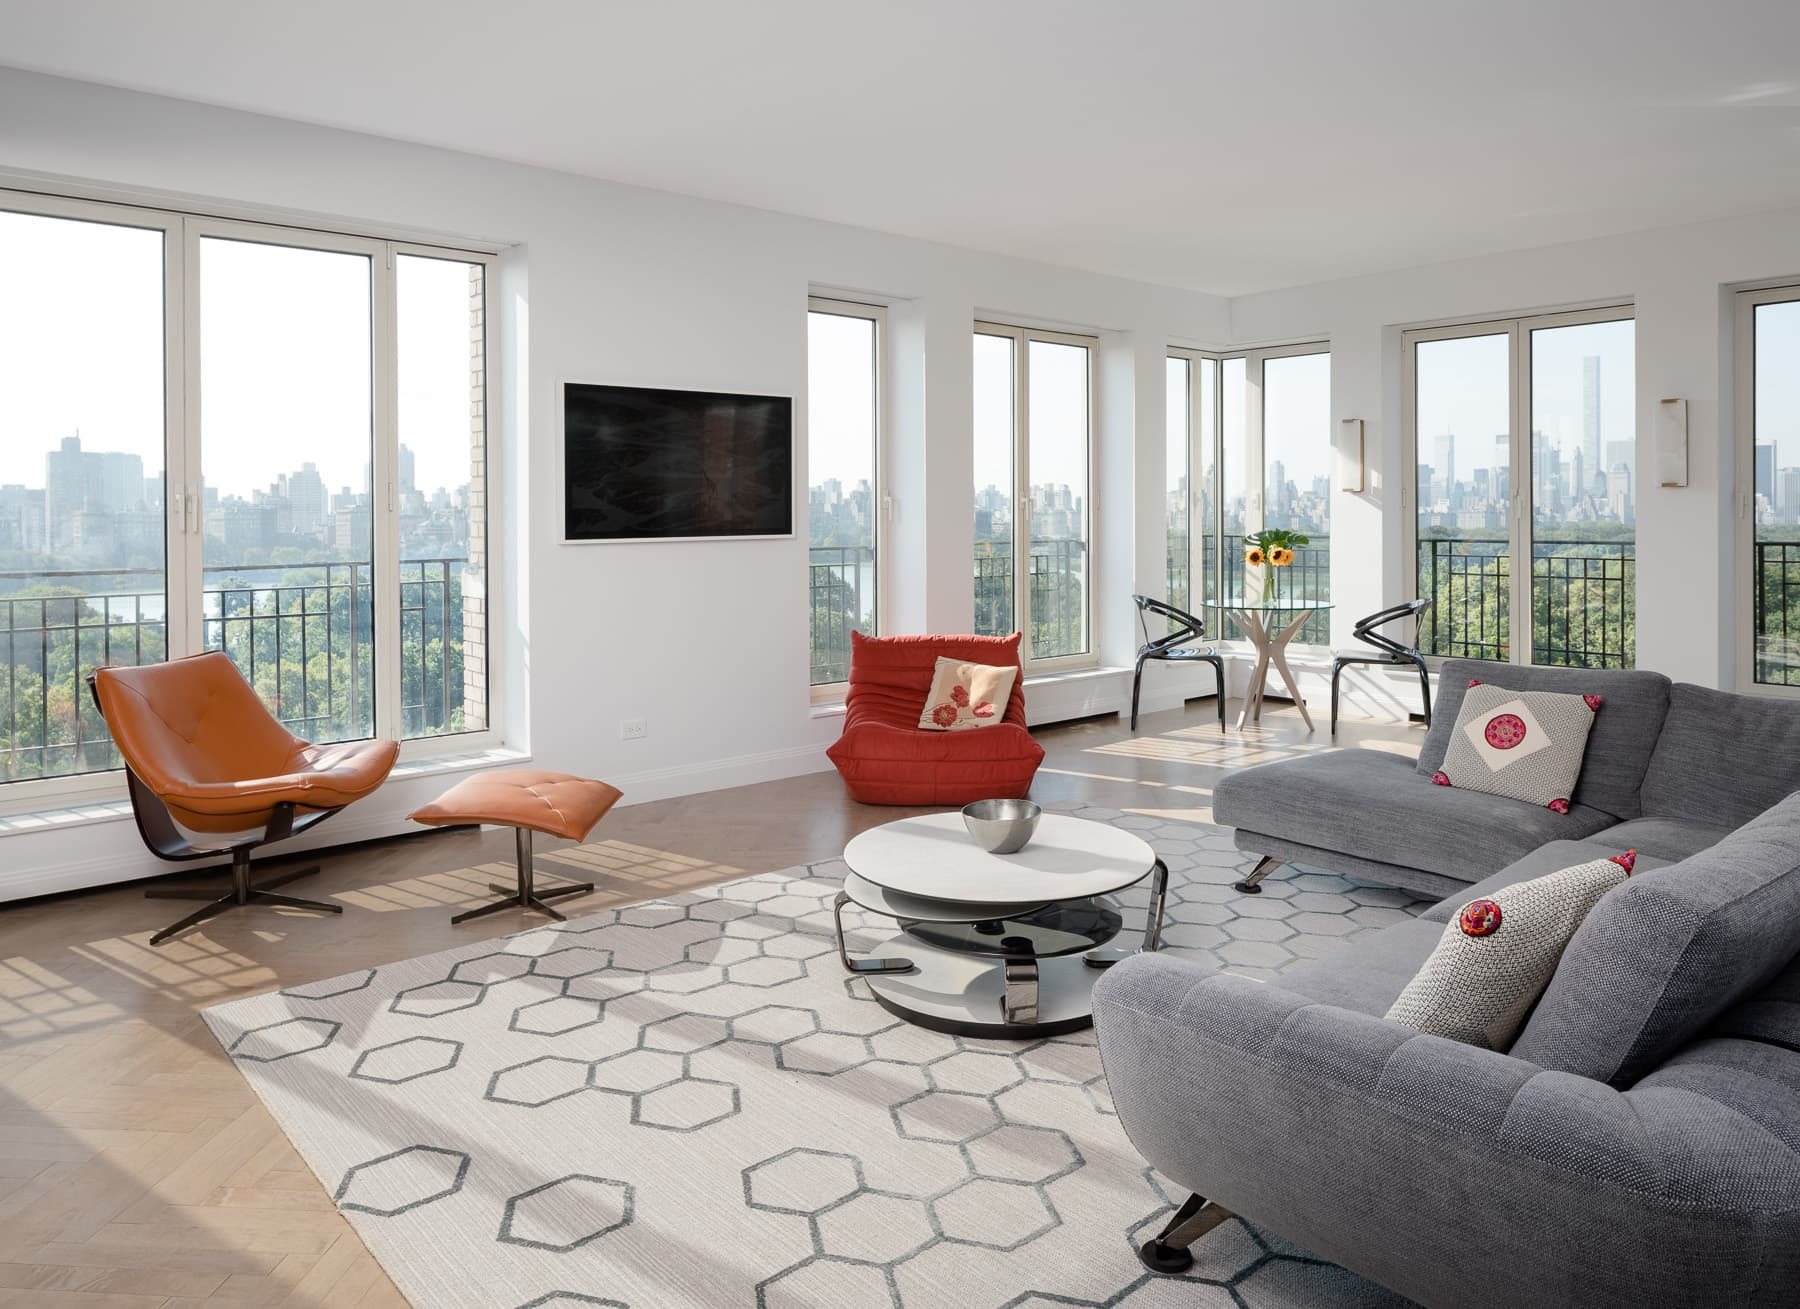 High-rise apartment overlooking Central Park.